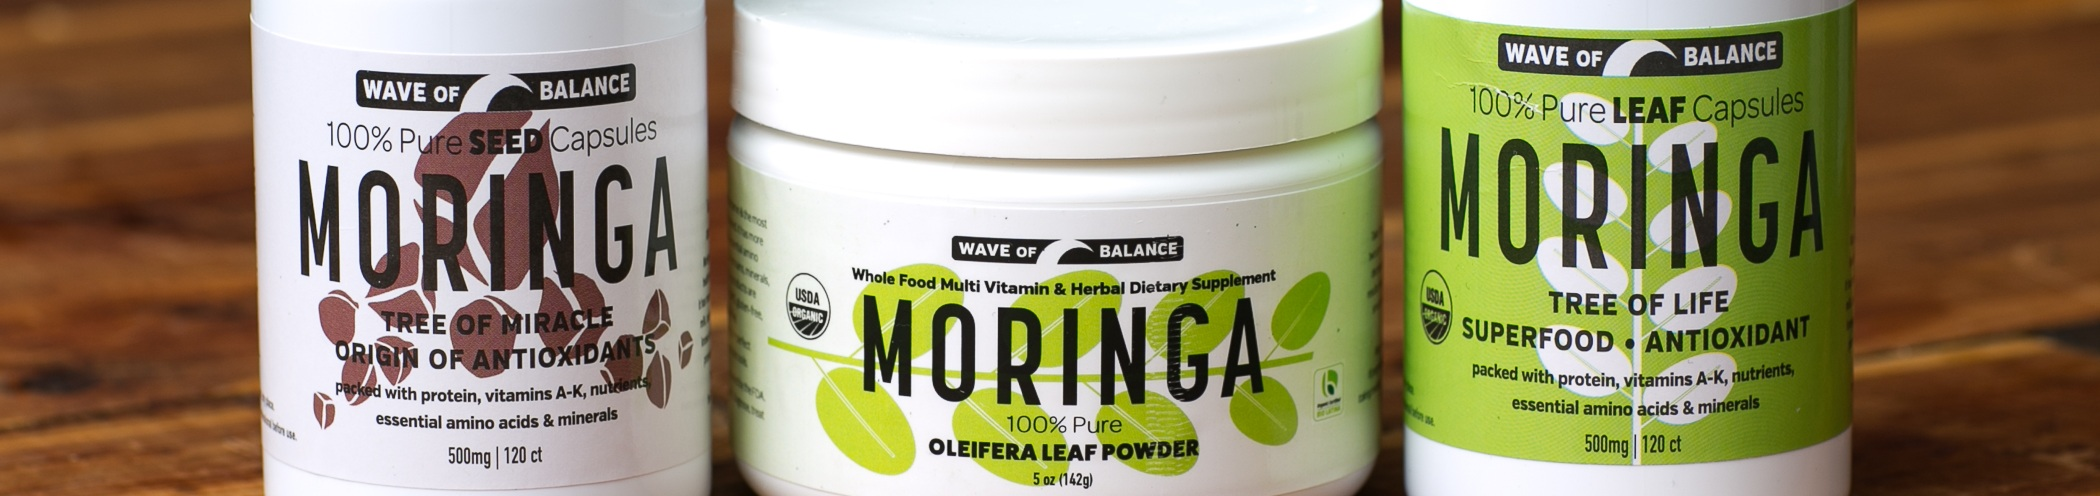 moringa-group1.jpg